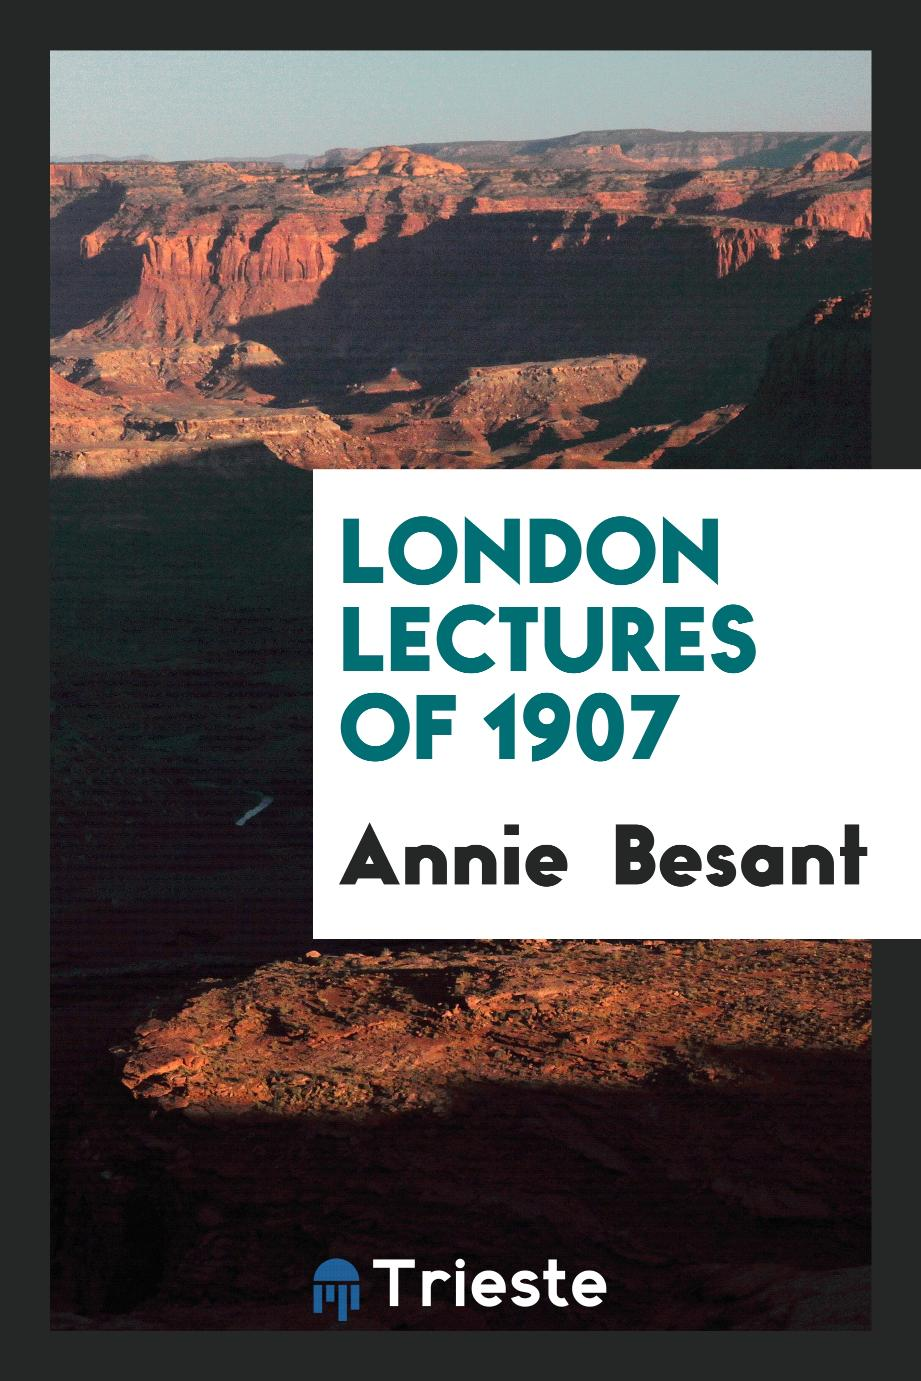 Annie Besant - London lectures of 1907